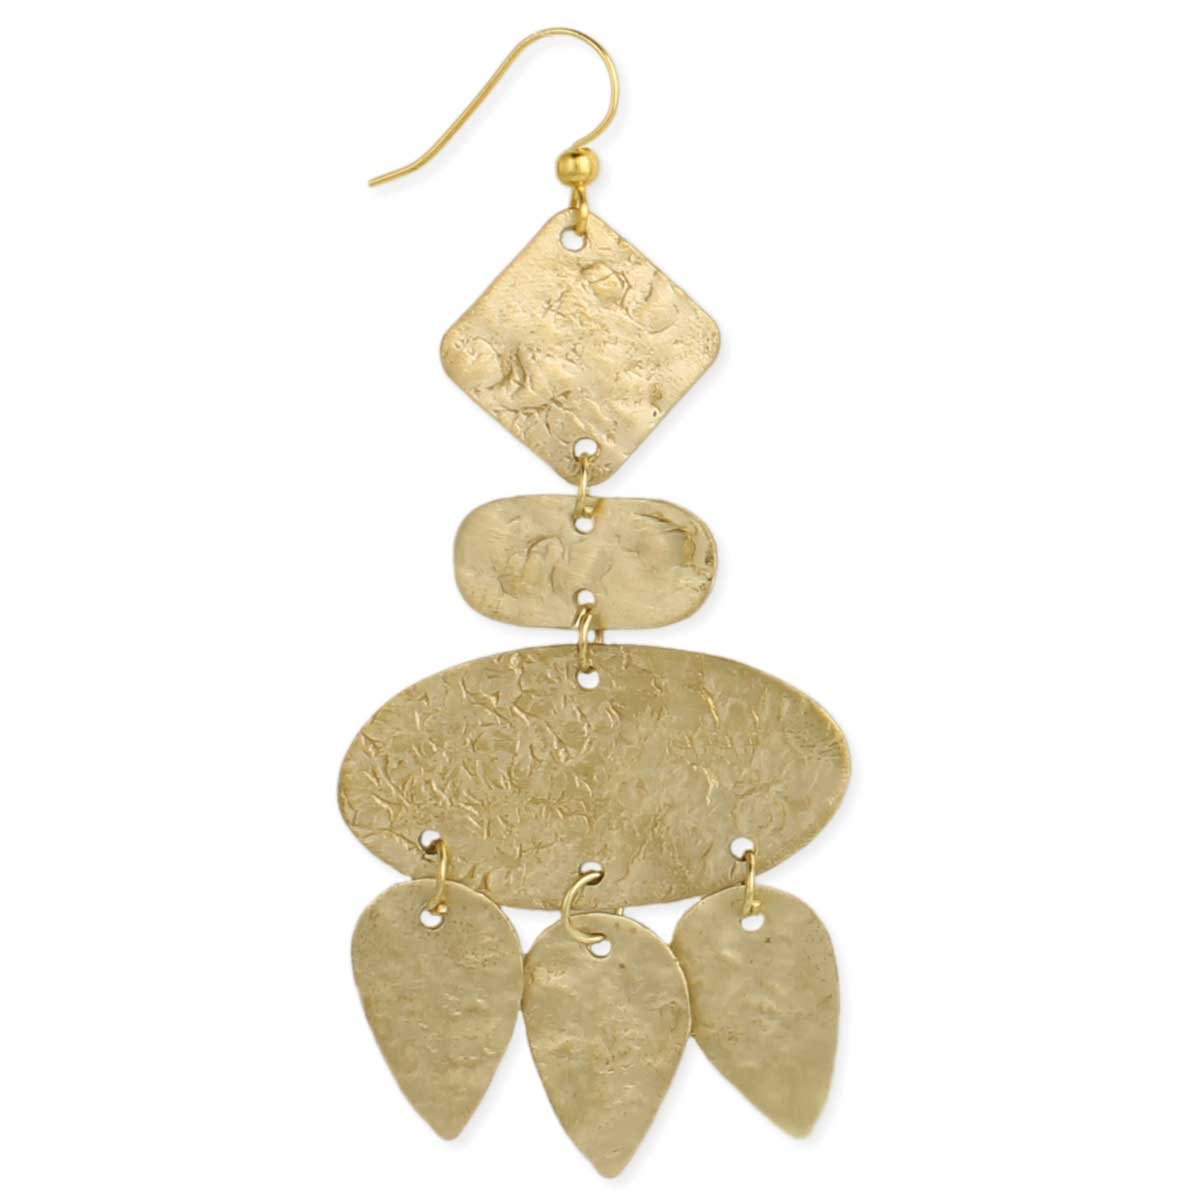 Textured Geometric Gold Earring View Detailed Images 2